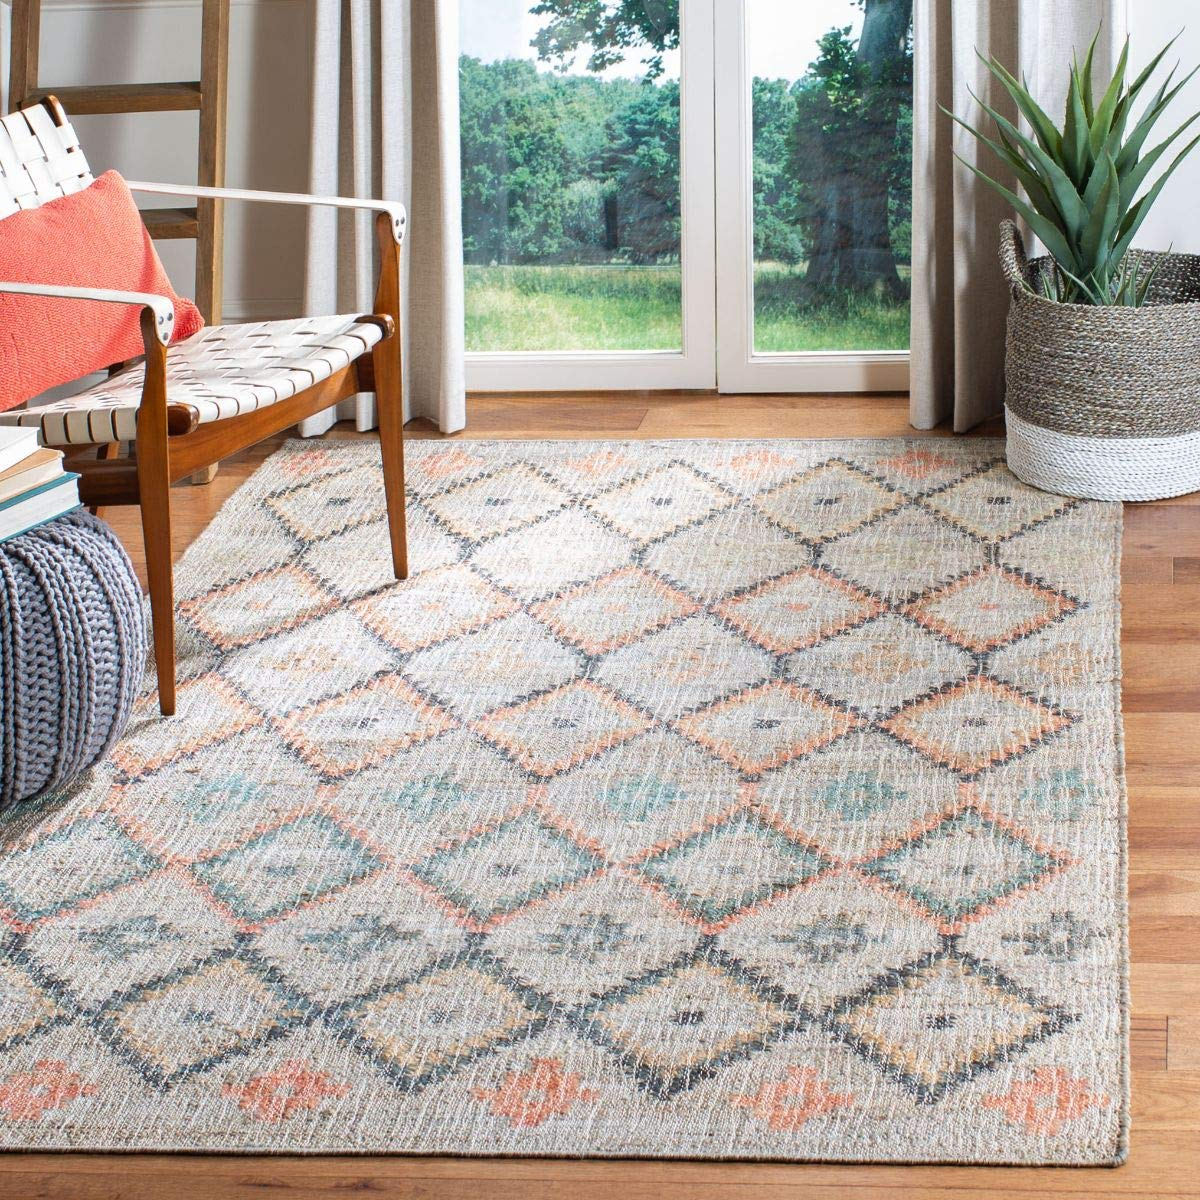 Safavieh Kilim Collection KLM753G Hand-Woven Moroccan Boho Jute and Cotton Runner, 3' x 5', Beige/Gold